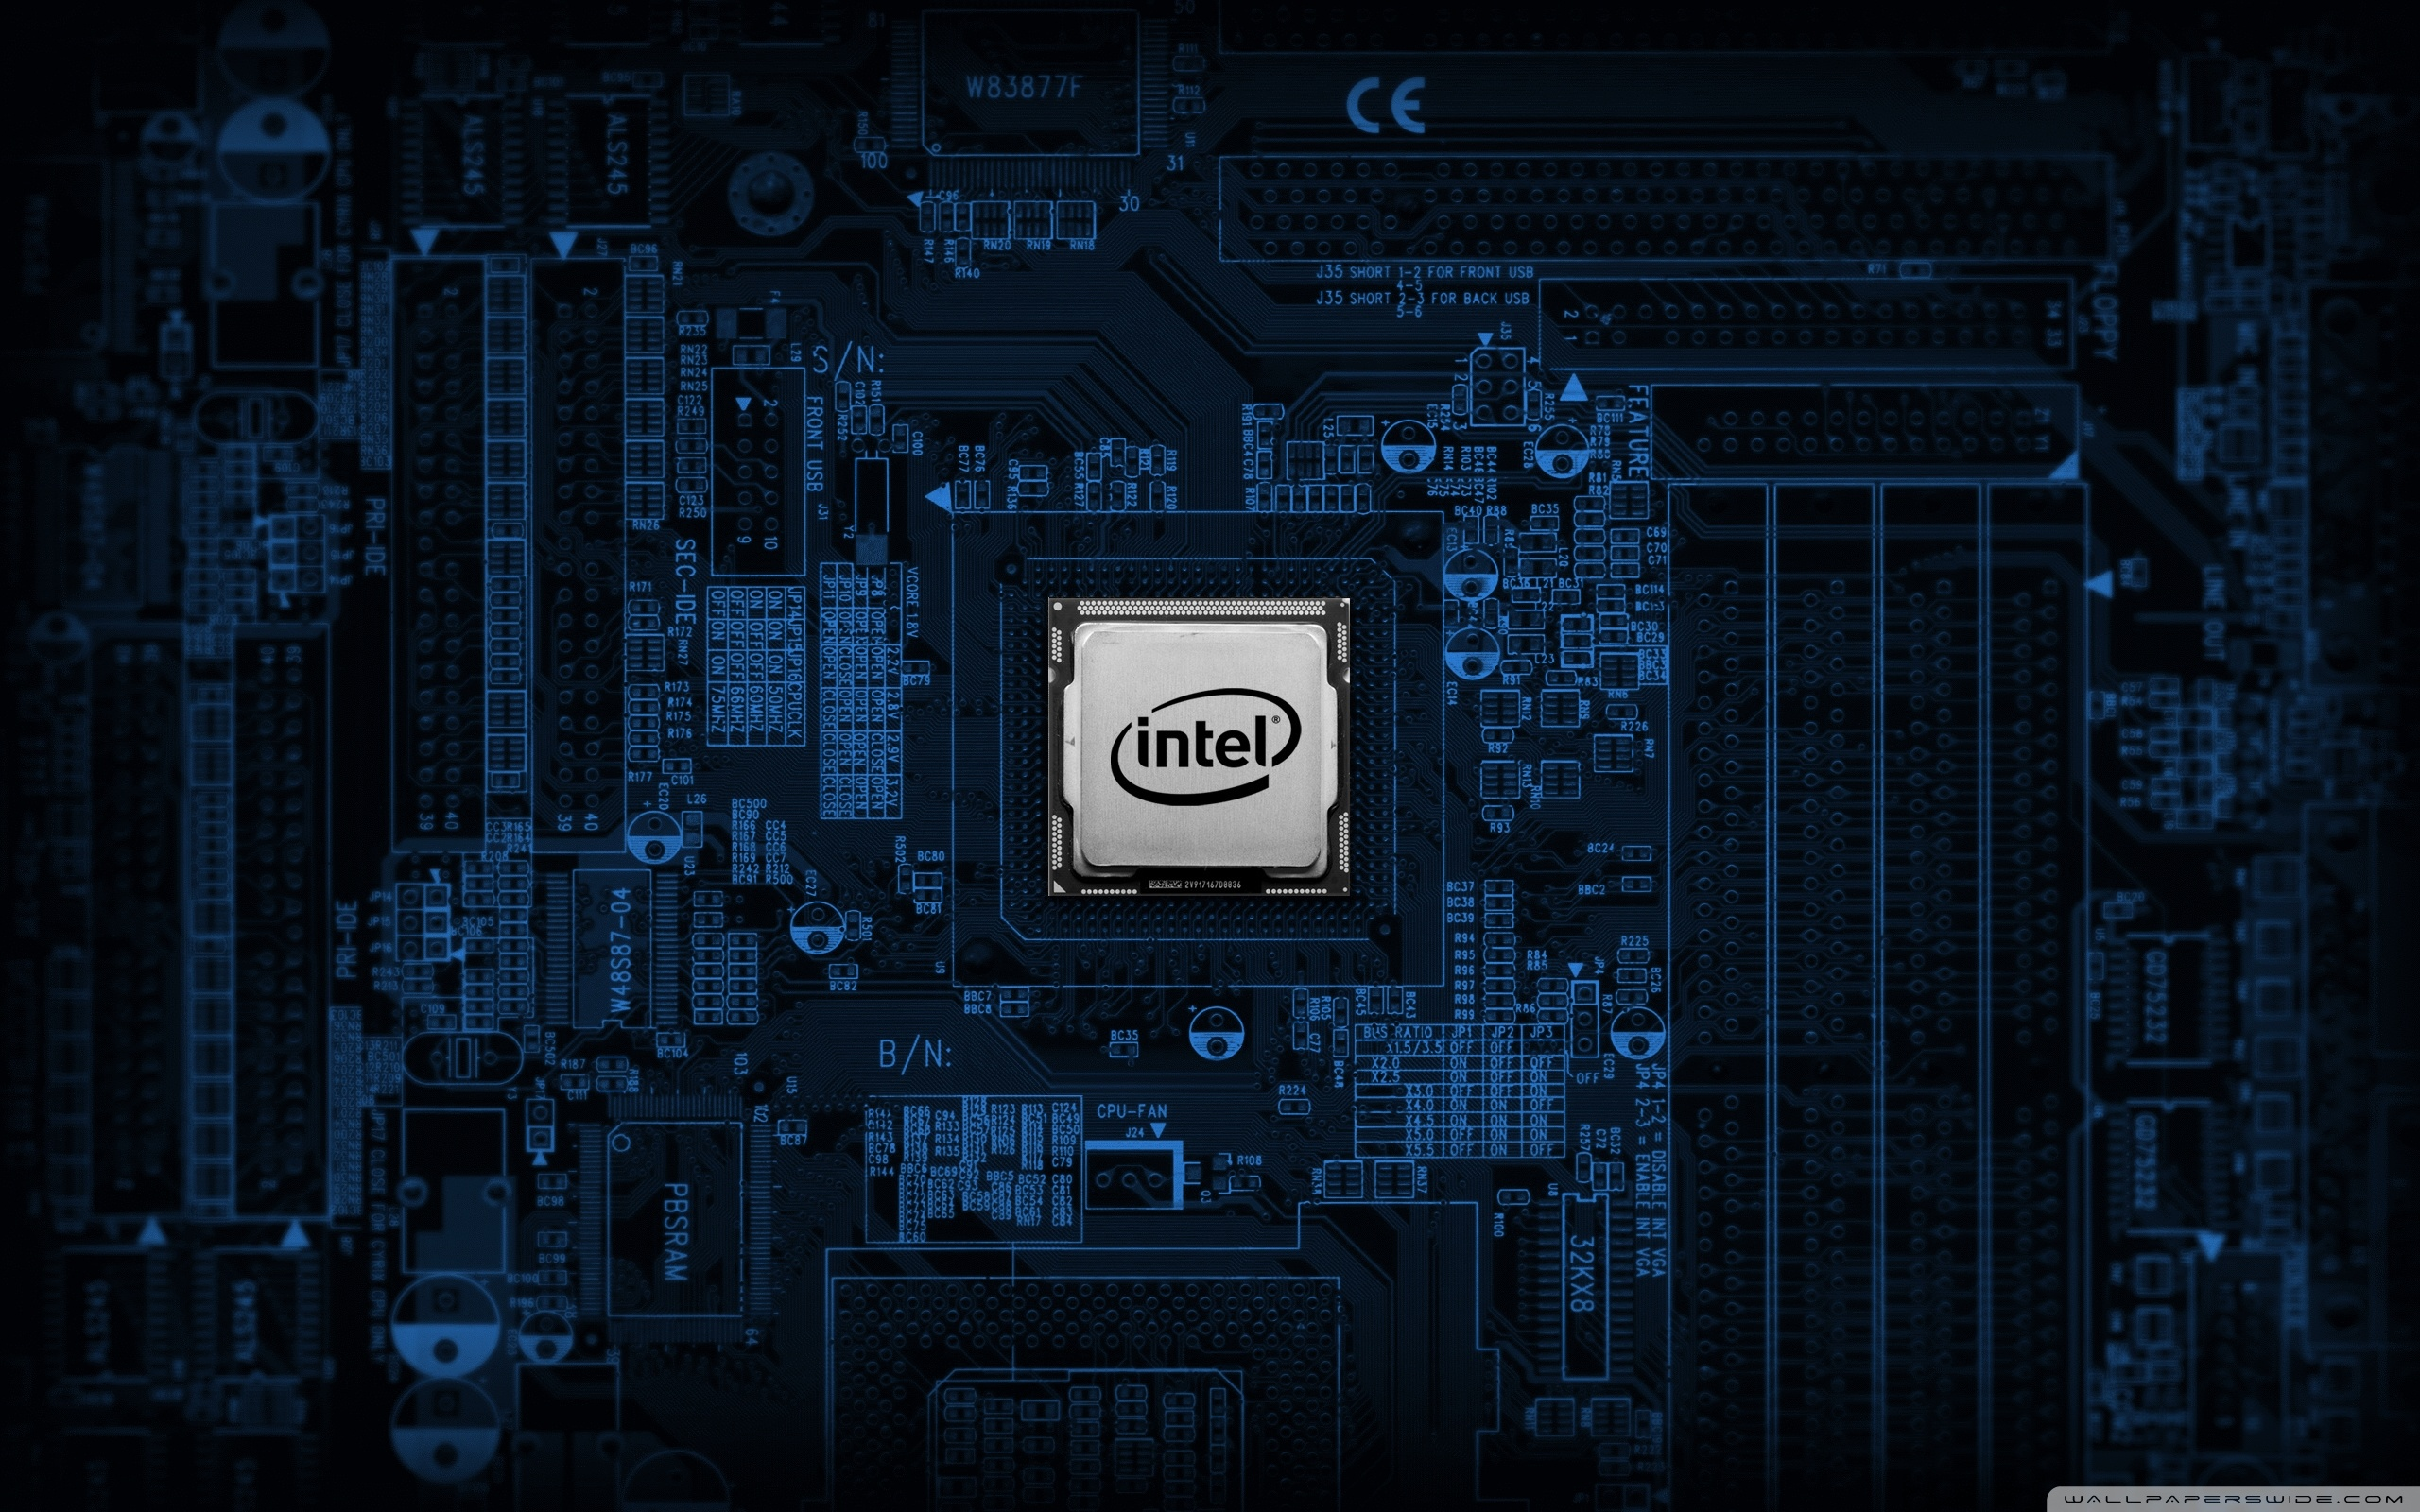 Intel Motherboard 4K HD Desktop Wallpaper for 4K Ultra HD TV 2560x1600